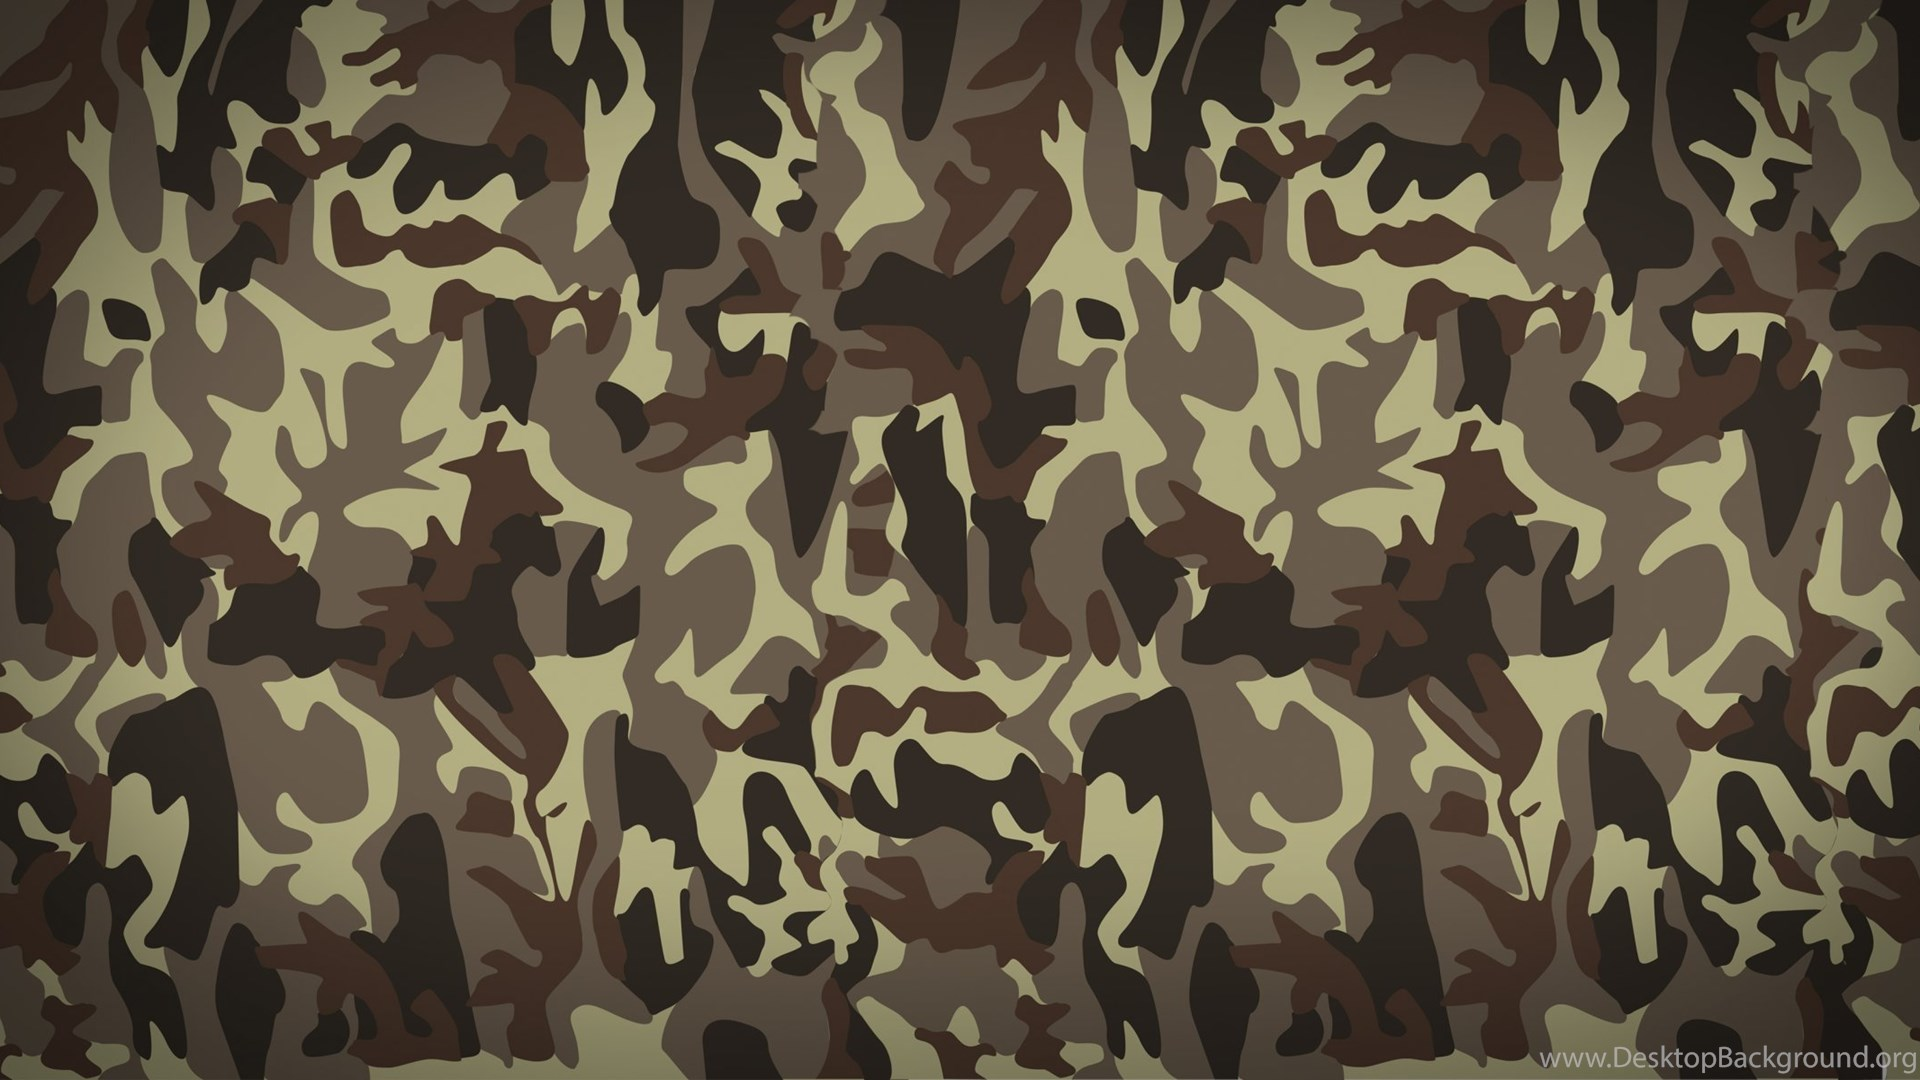 28 Free Camouflage Hd And Desktop Backgrounds: Khaki Textures Green Military Color Army Color The Army